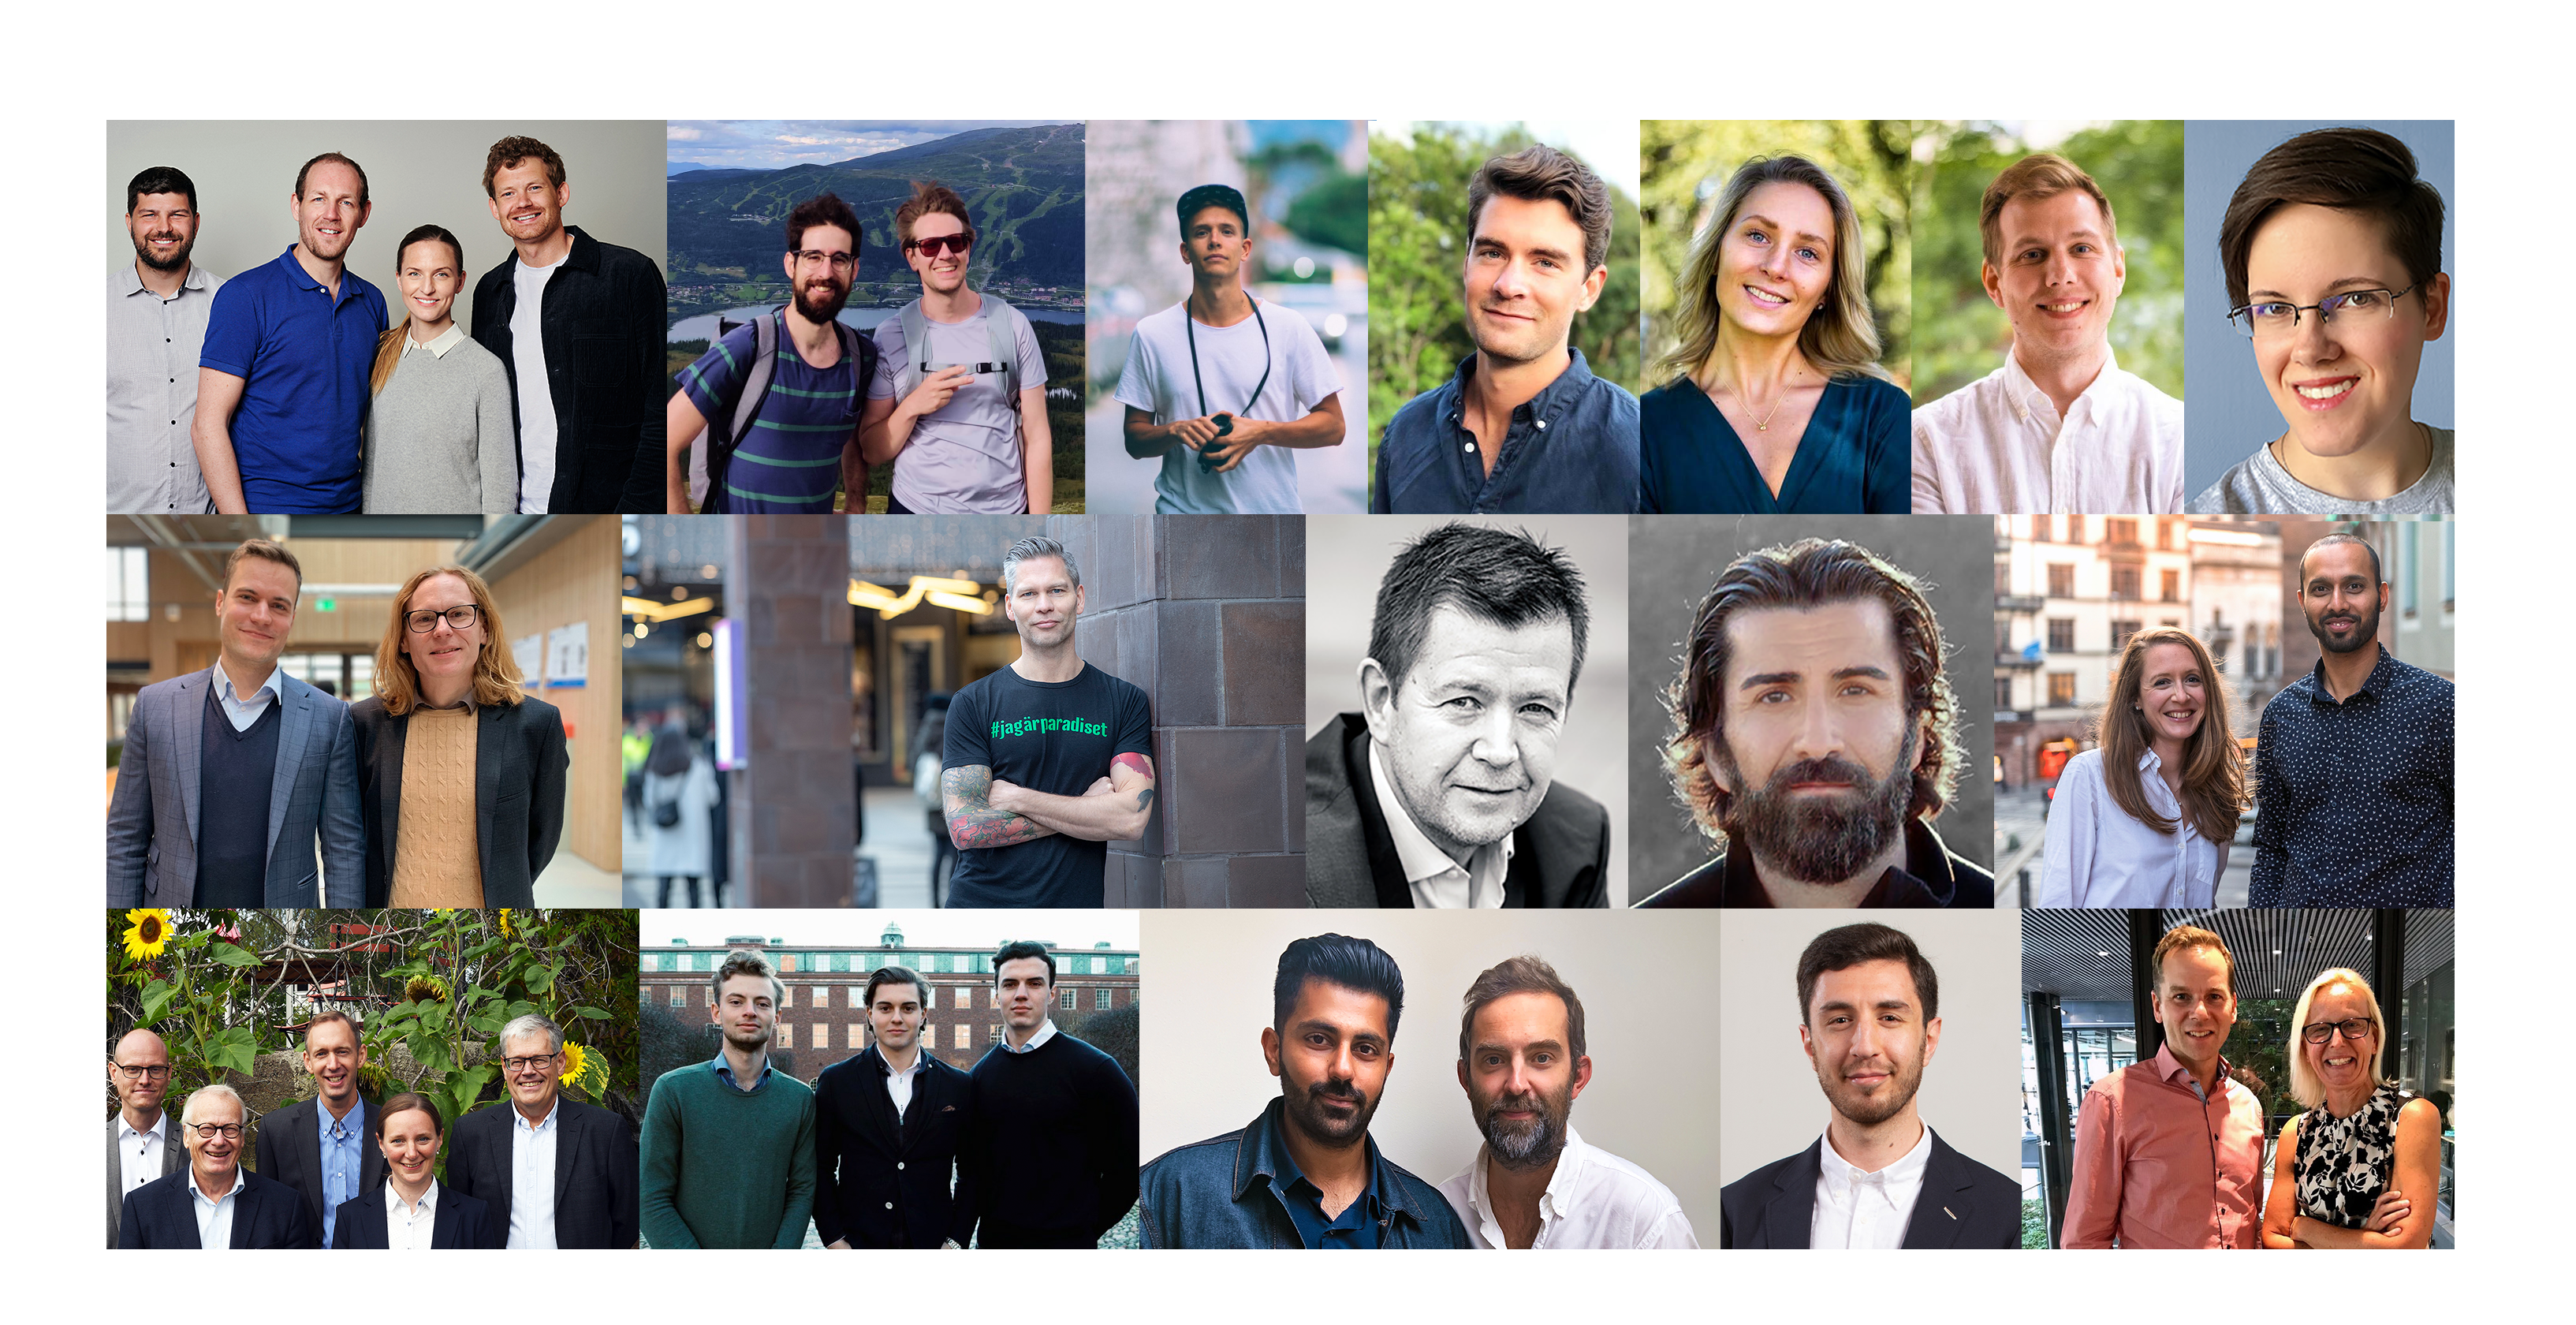 List: Meet the 15 new startups accepted to Sting